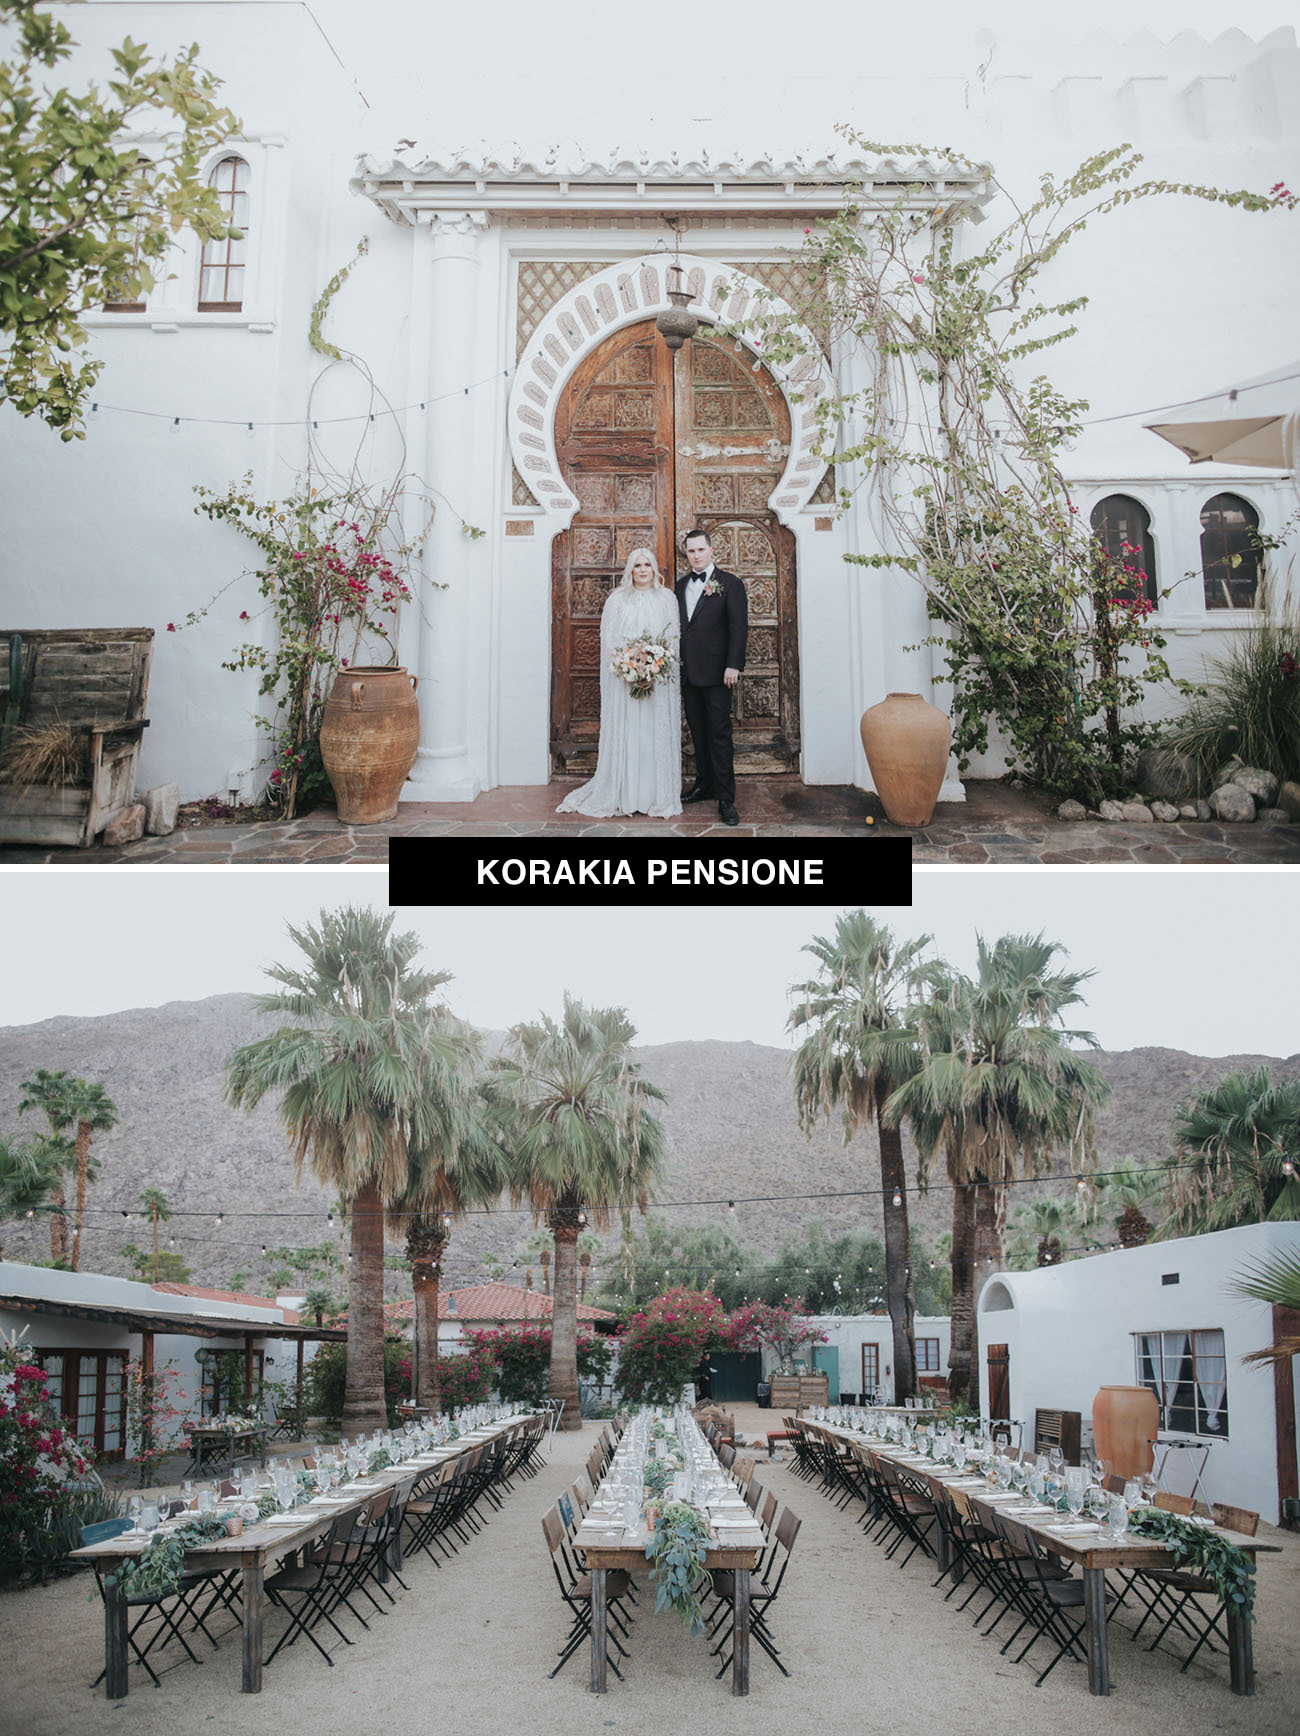 KoraKia Pensione wedding venue in Palm Springs, California with a Moroccan vibe